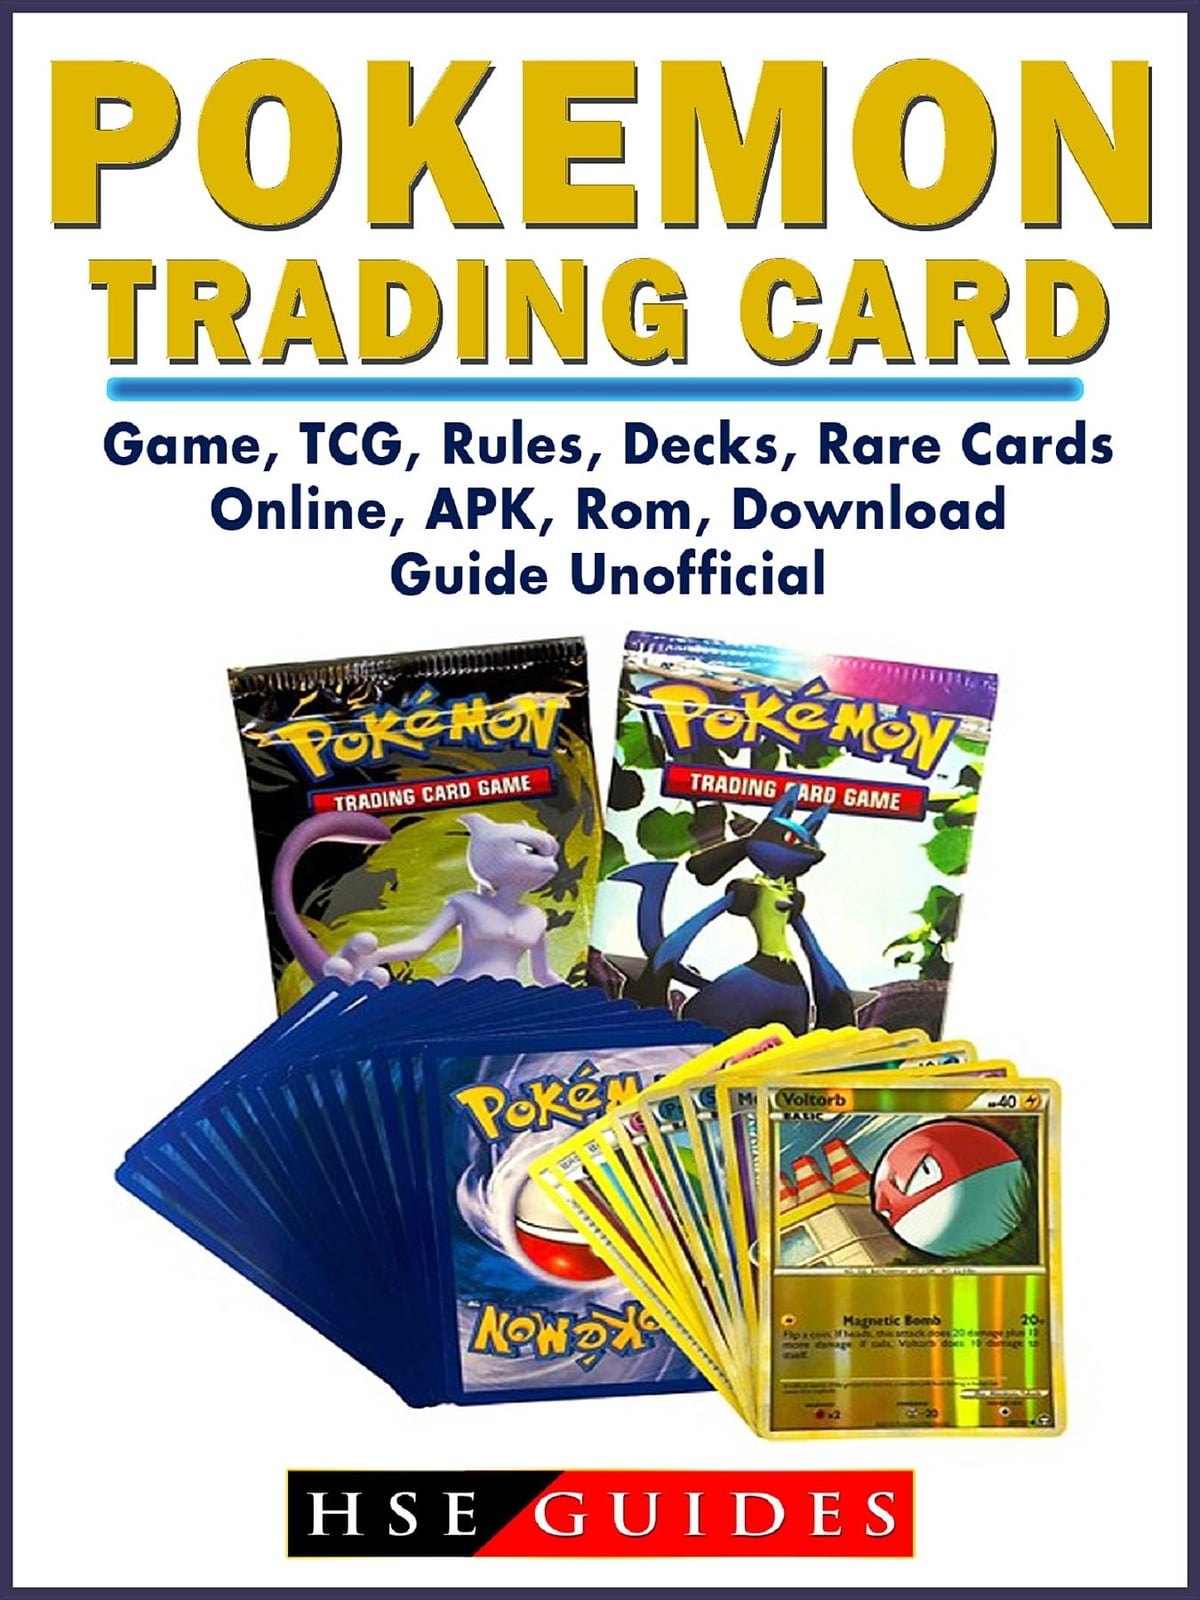 Pokemon Trading Card Game, TCG, Rules, Decks, Rare Cards, Online, APK, Rom,  Download, Guide Unofficial ebook by HSE Guides - Rakuten Kobo